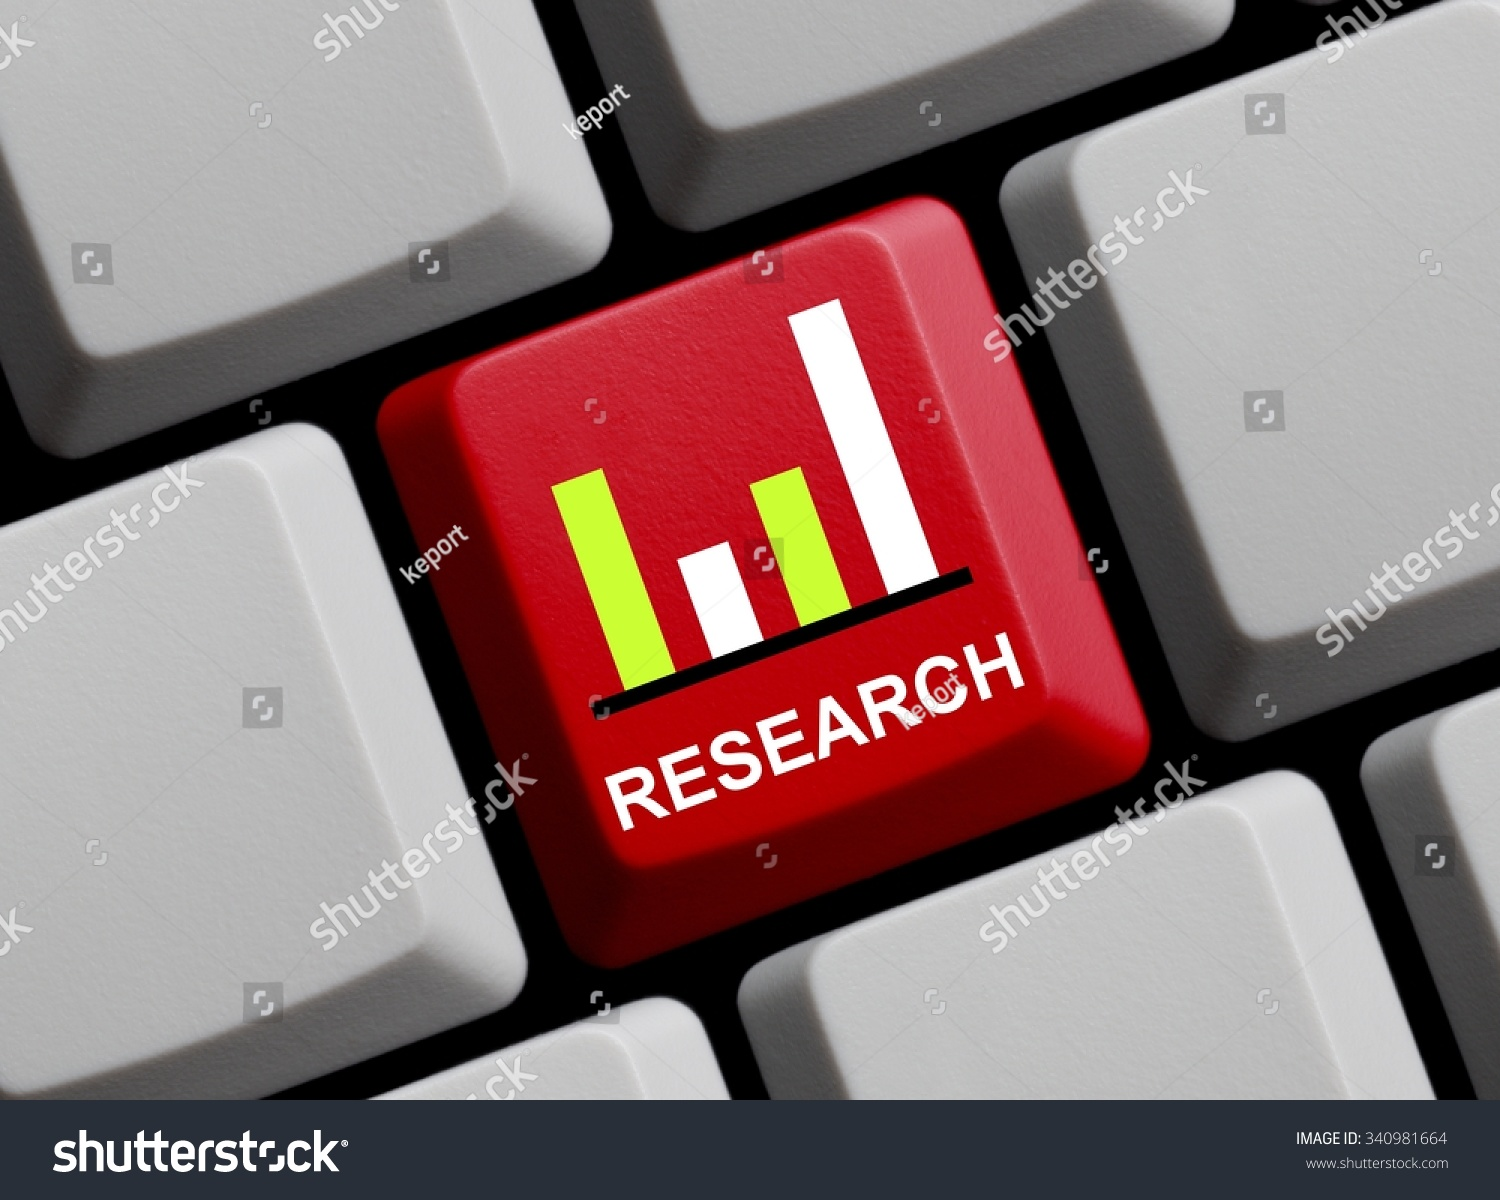 hight resolution of computer keyboard showing icon of diagram and research